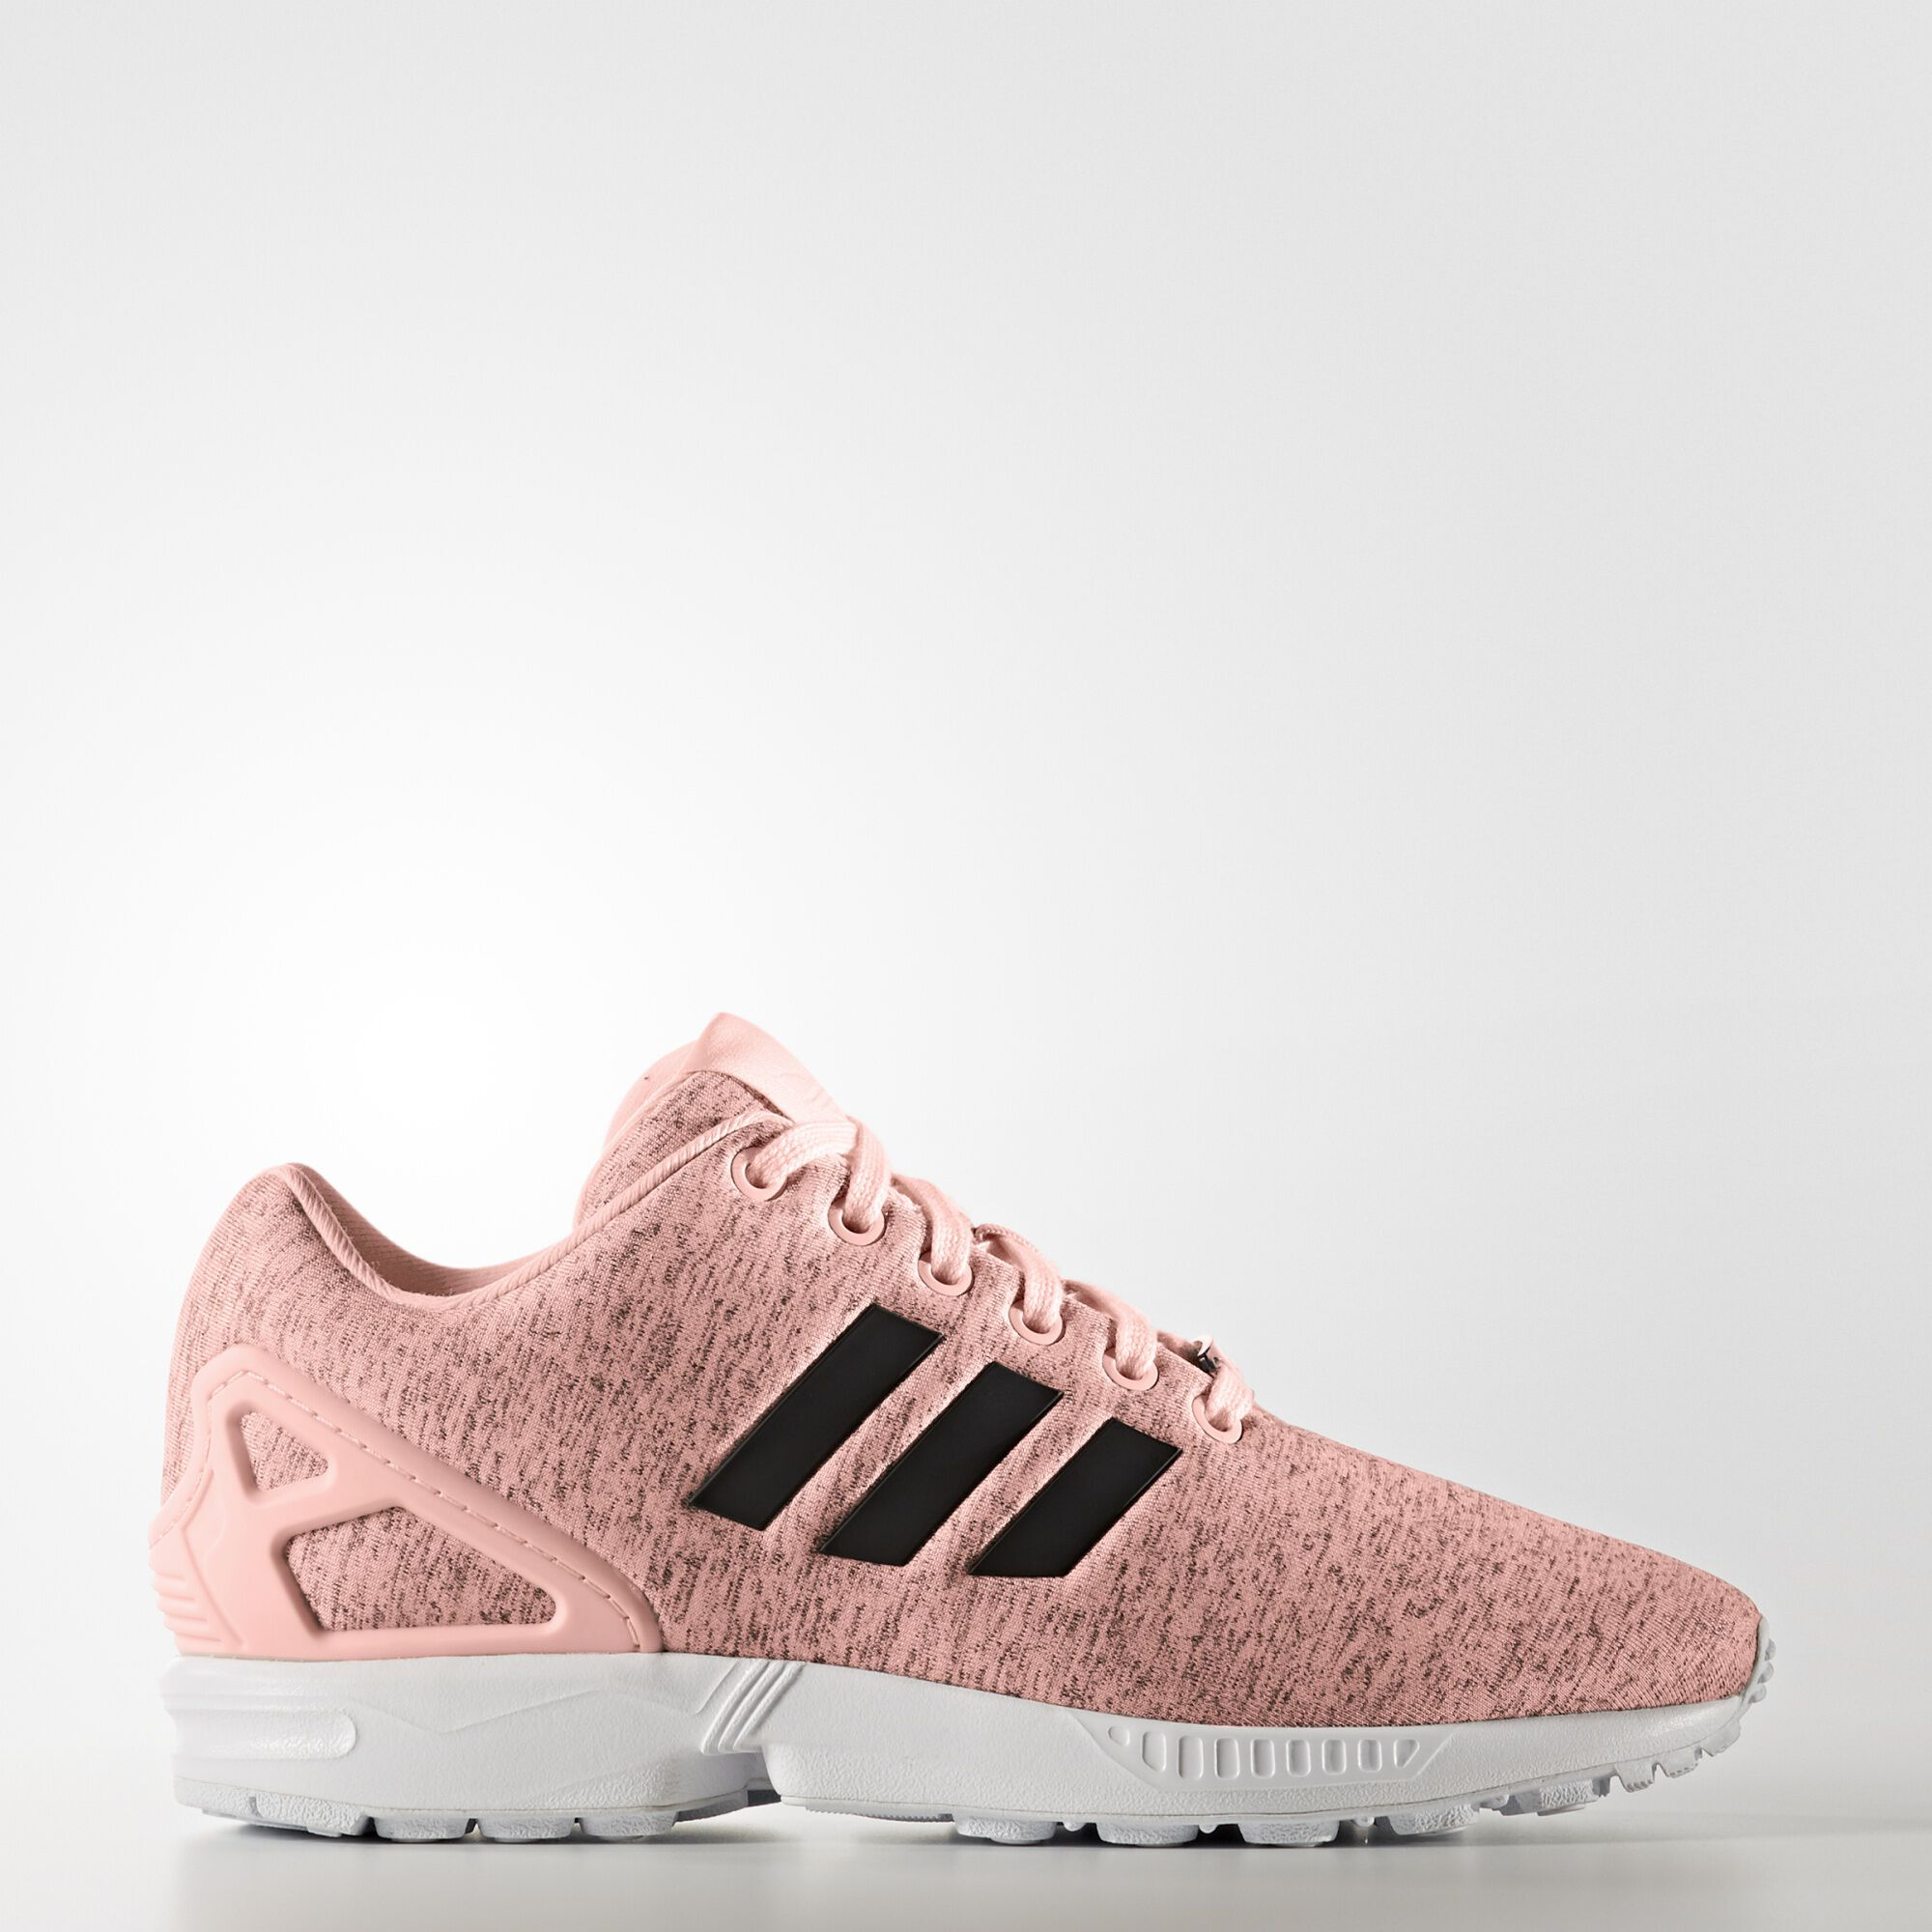 Adidas Zx Flux Pink And White